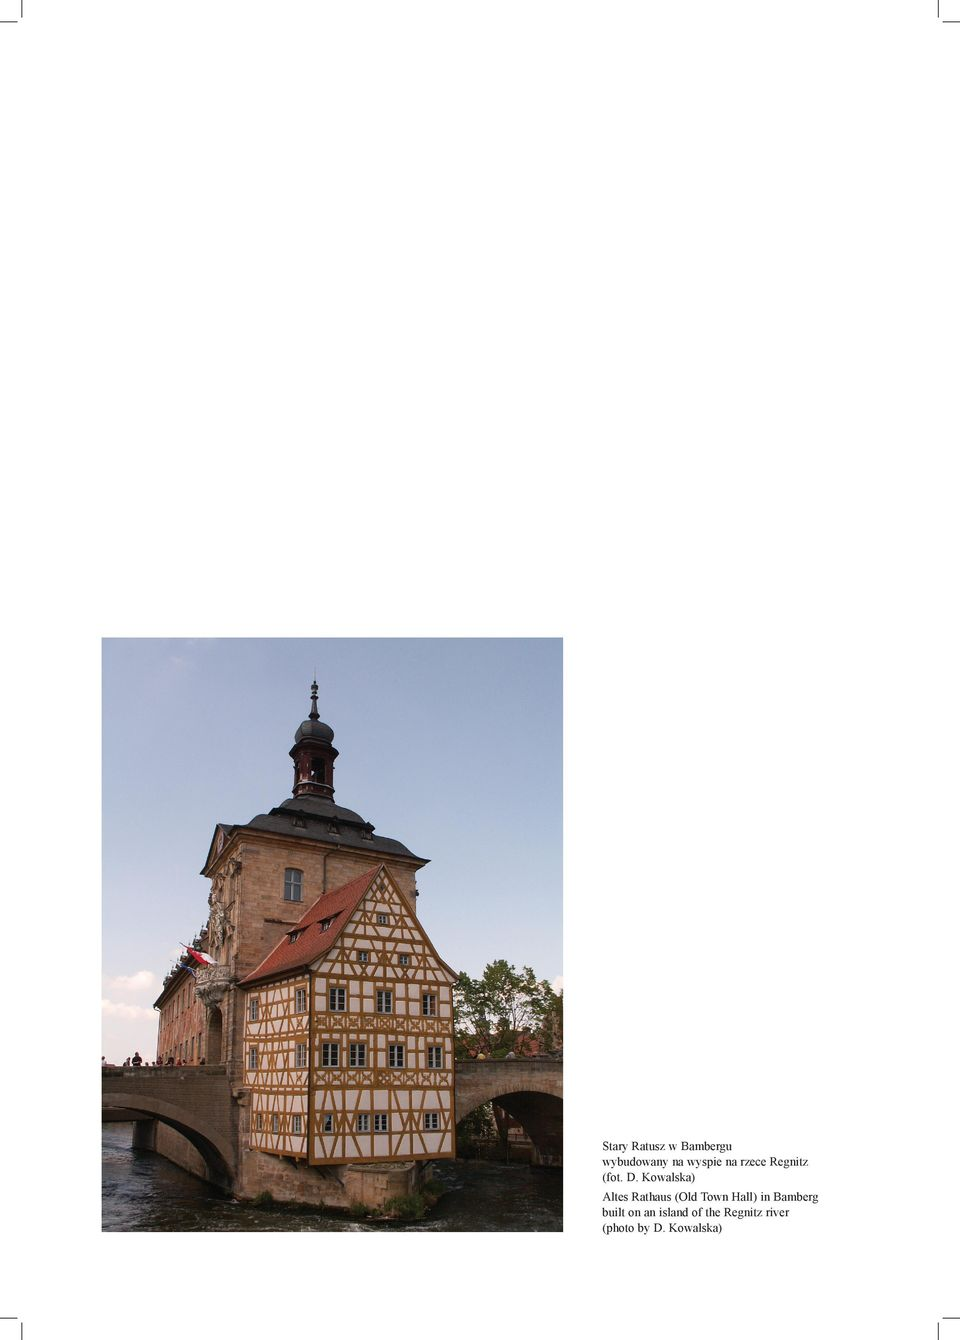 Kowalska) Altes Rathaus (Old Town Hall) in Bamberg